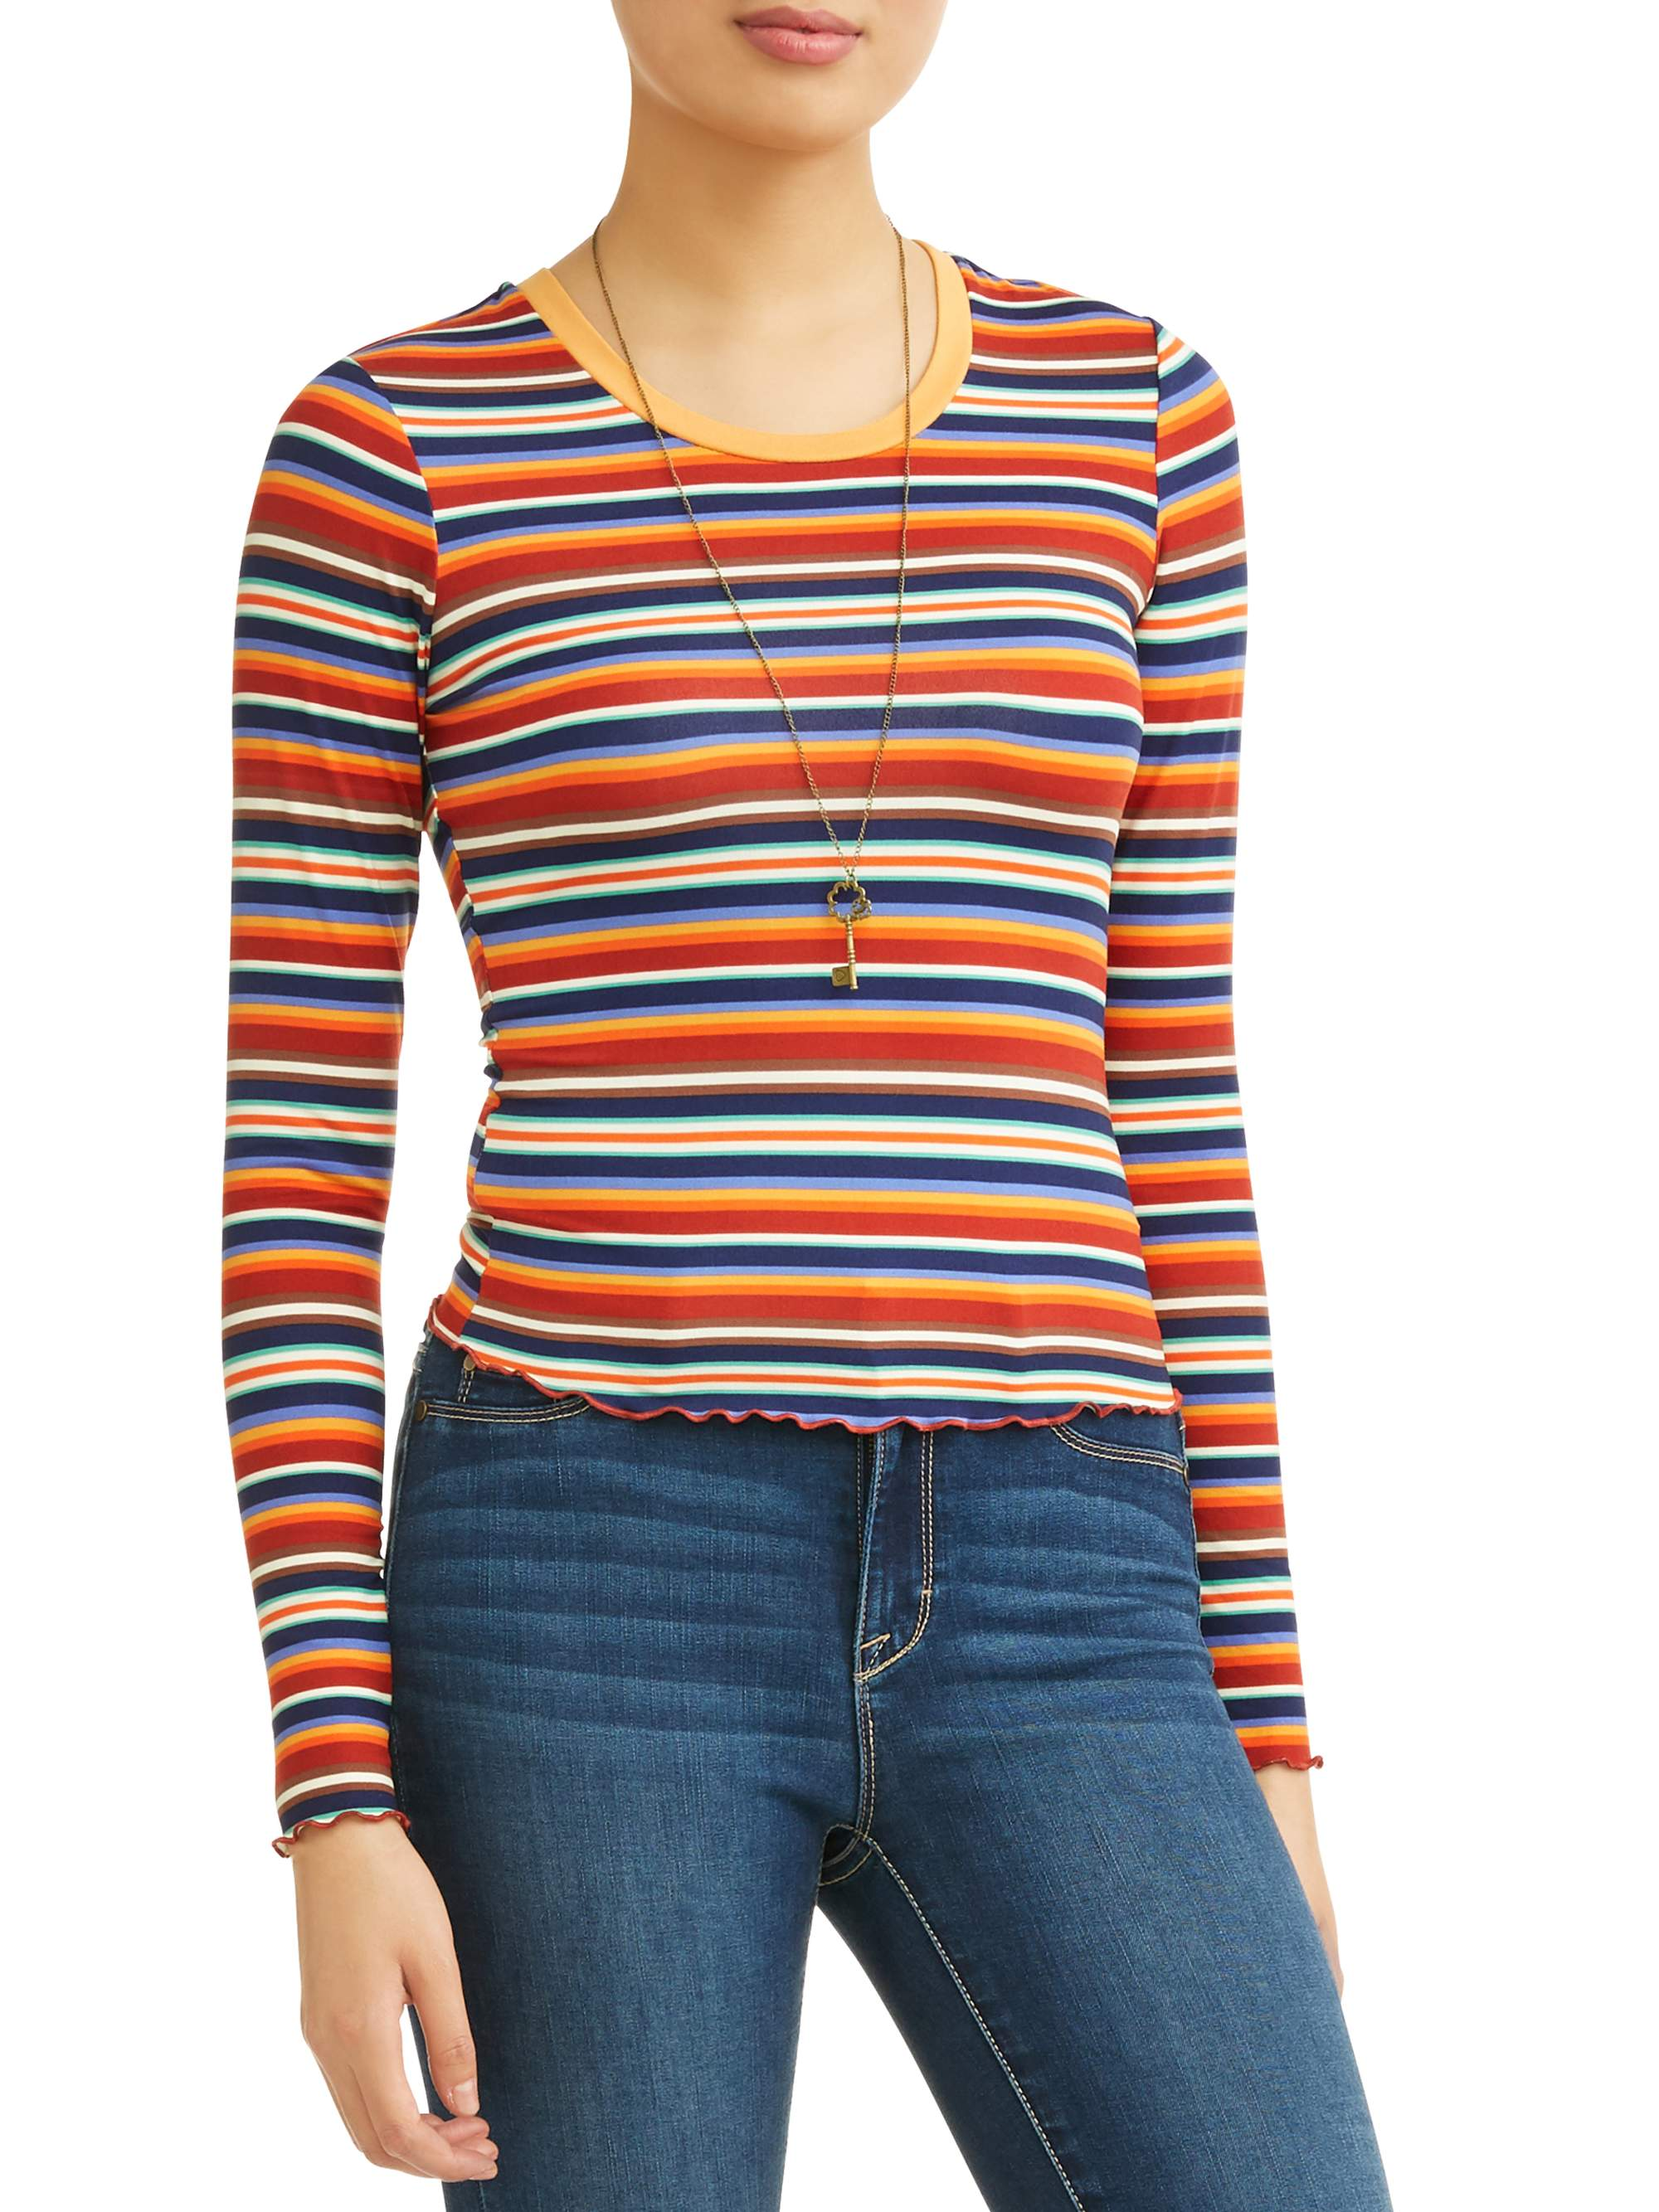 Juniors' Striped Frill Edge Cropped T-Shirt w/ Necklace 2Fer